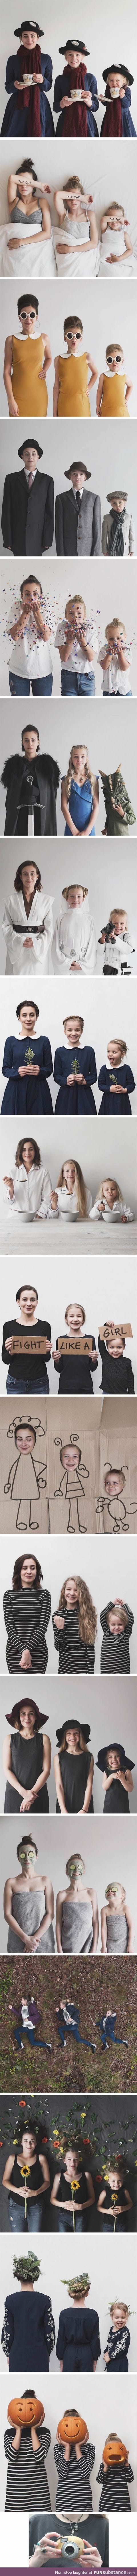 Mother takes adorable photos with her two daughters in matching clothing